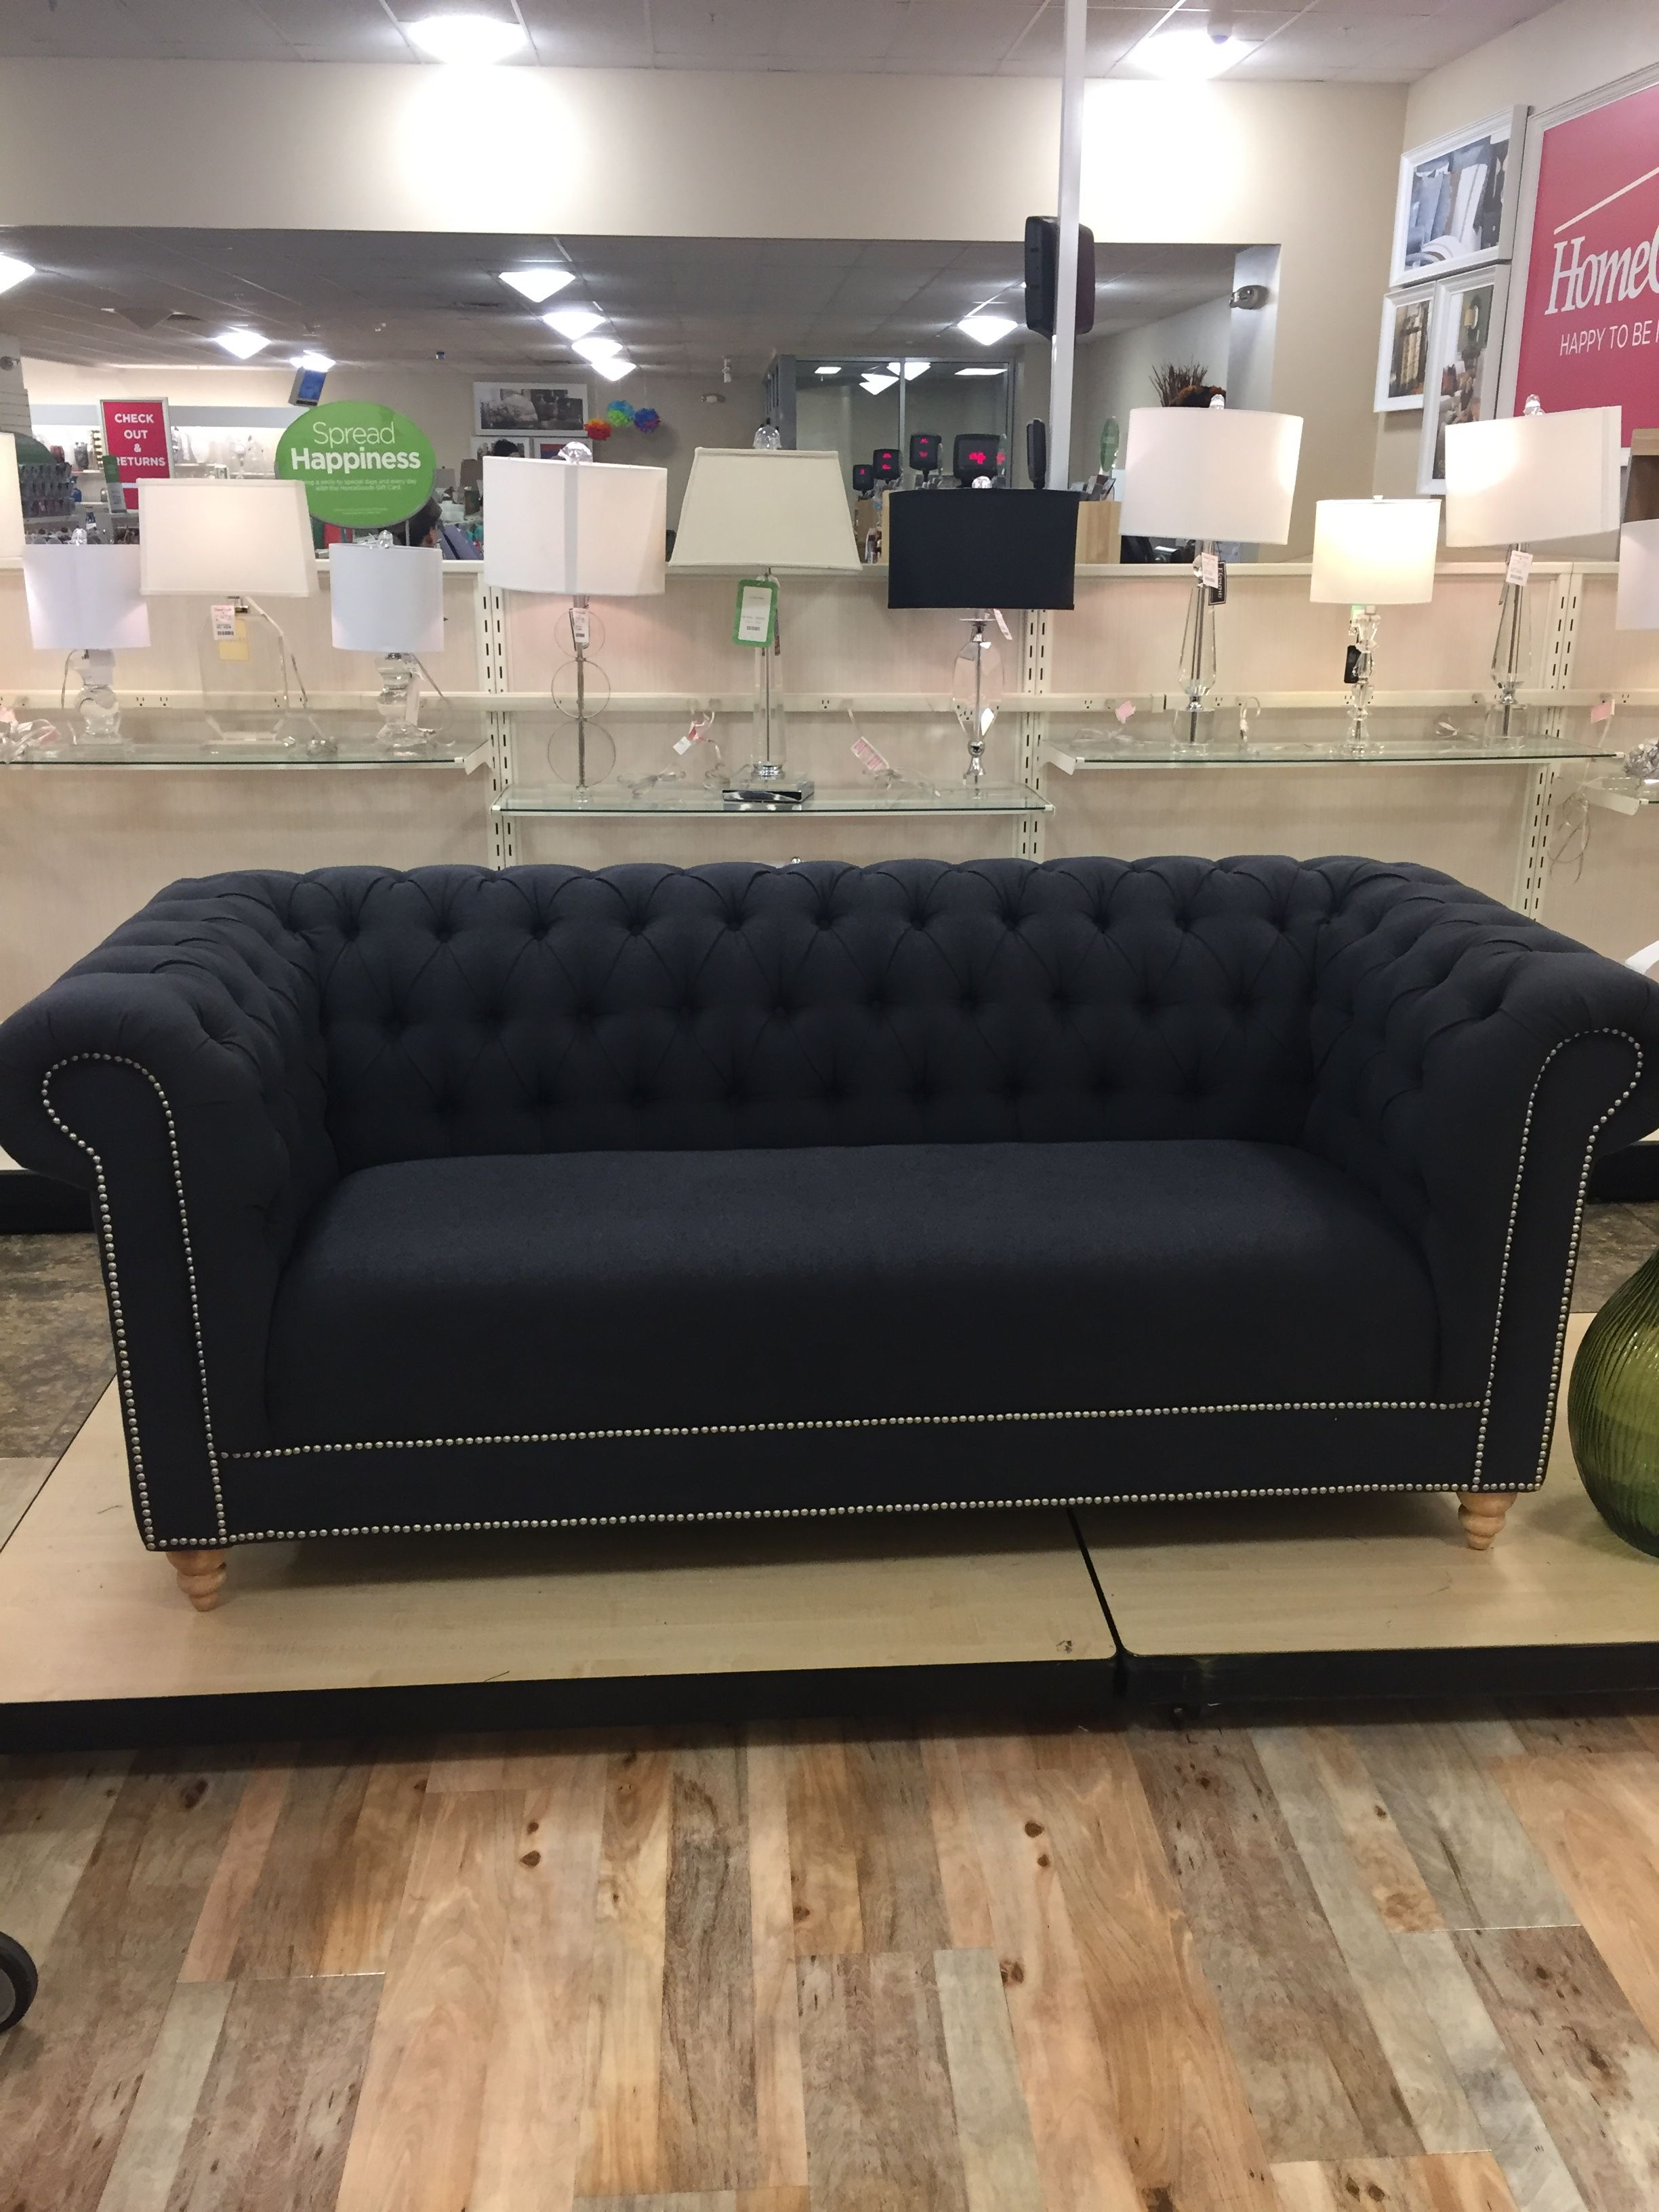 Chesterfield Sofa Home Goods